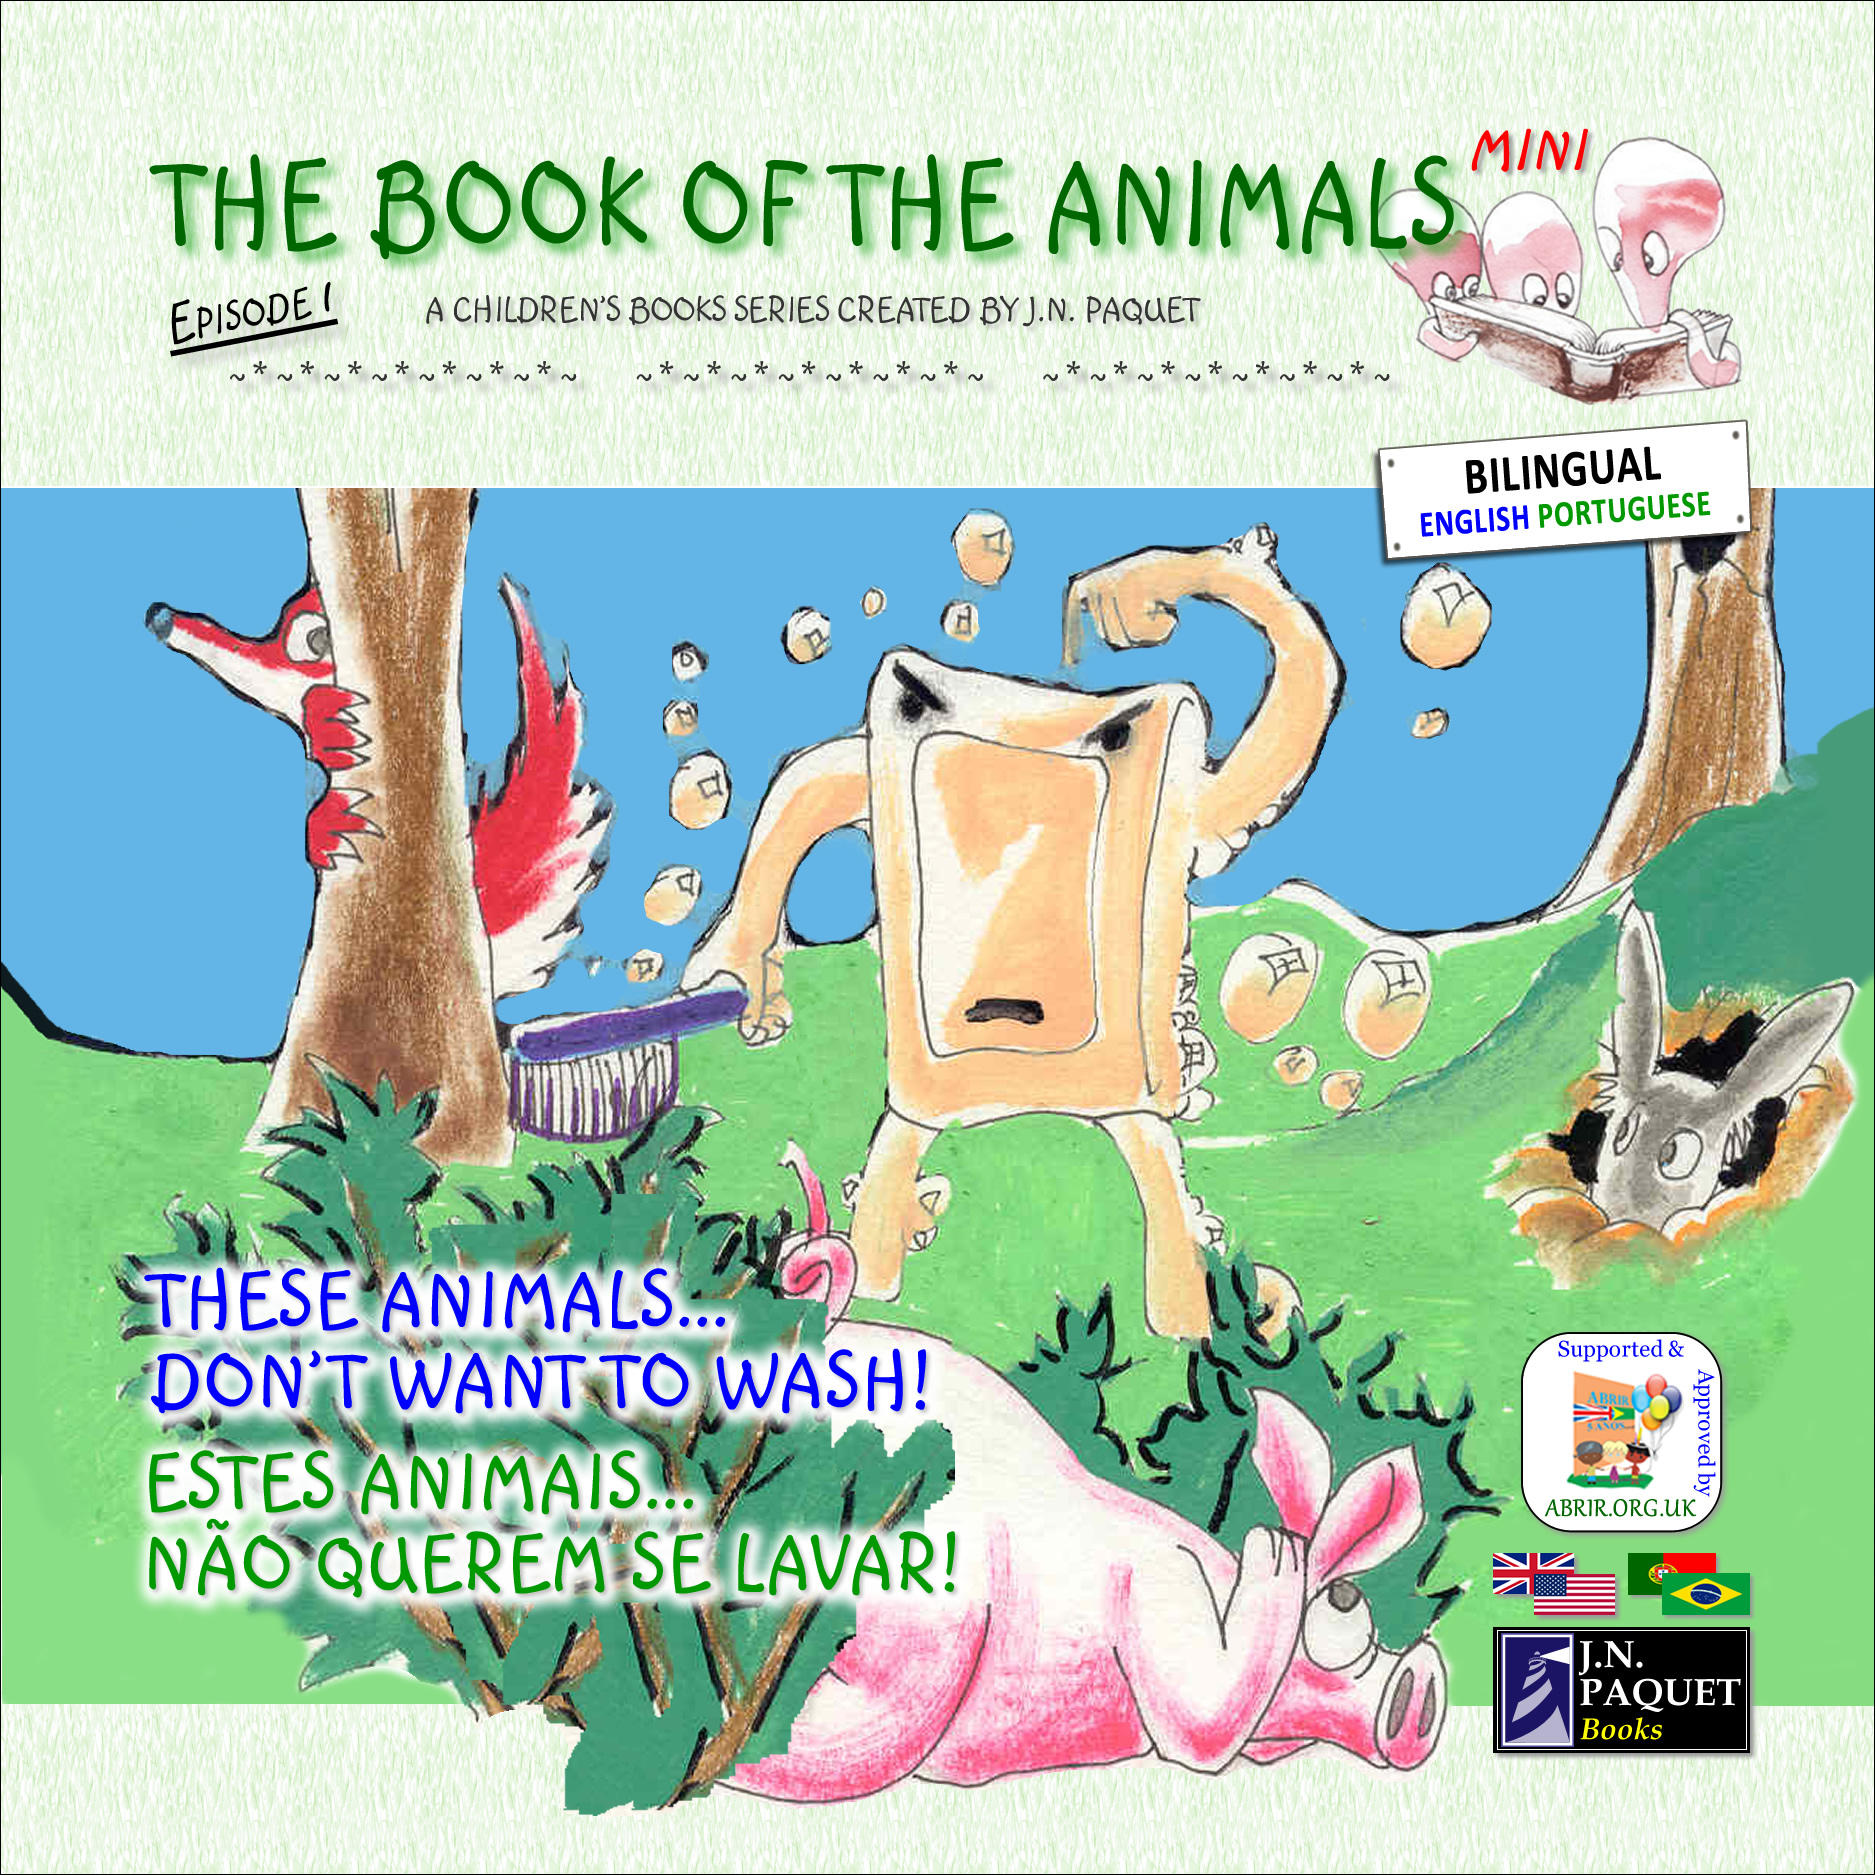 The Book of The Animals - Mini - Episode 1 (Bilingual English-Portuguese)